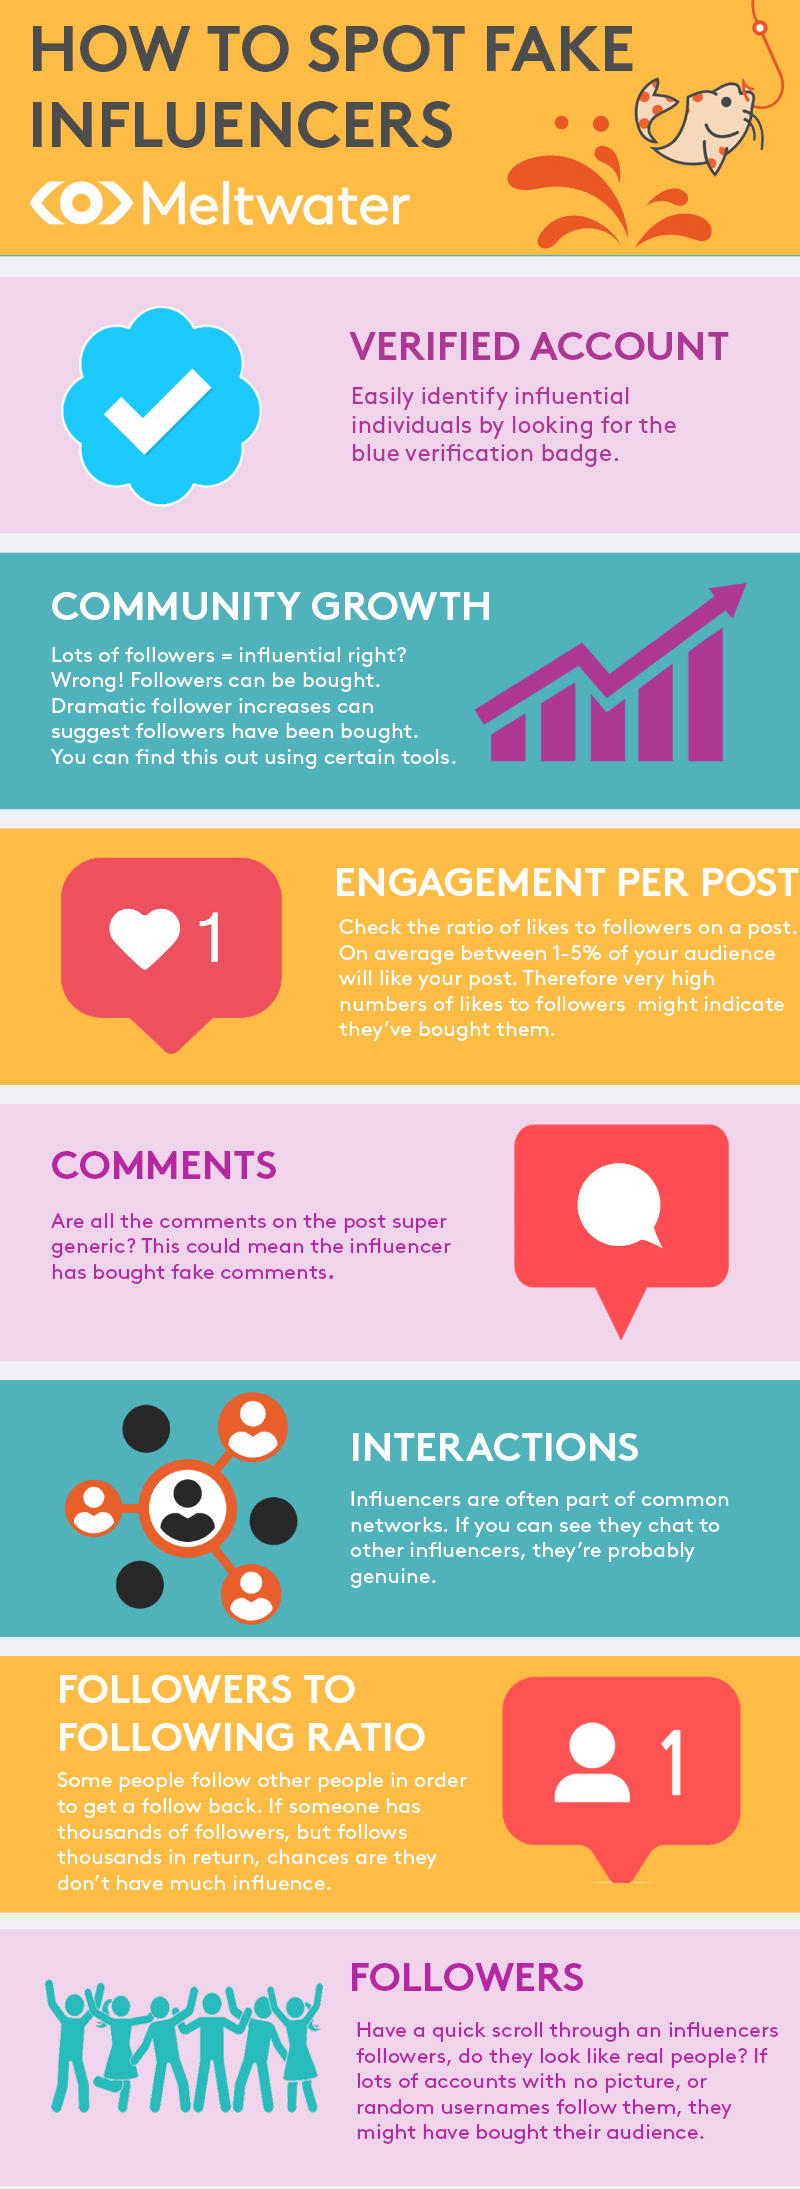 spot fake influencers infographic